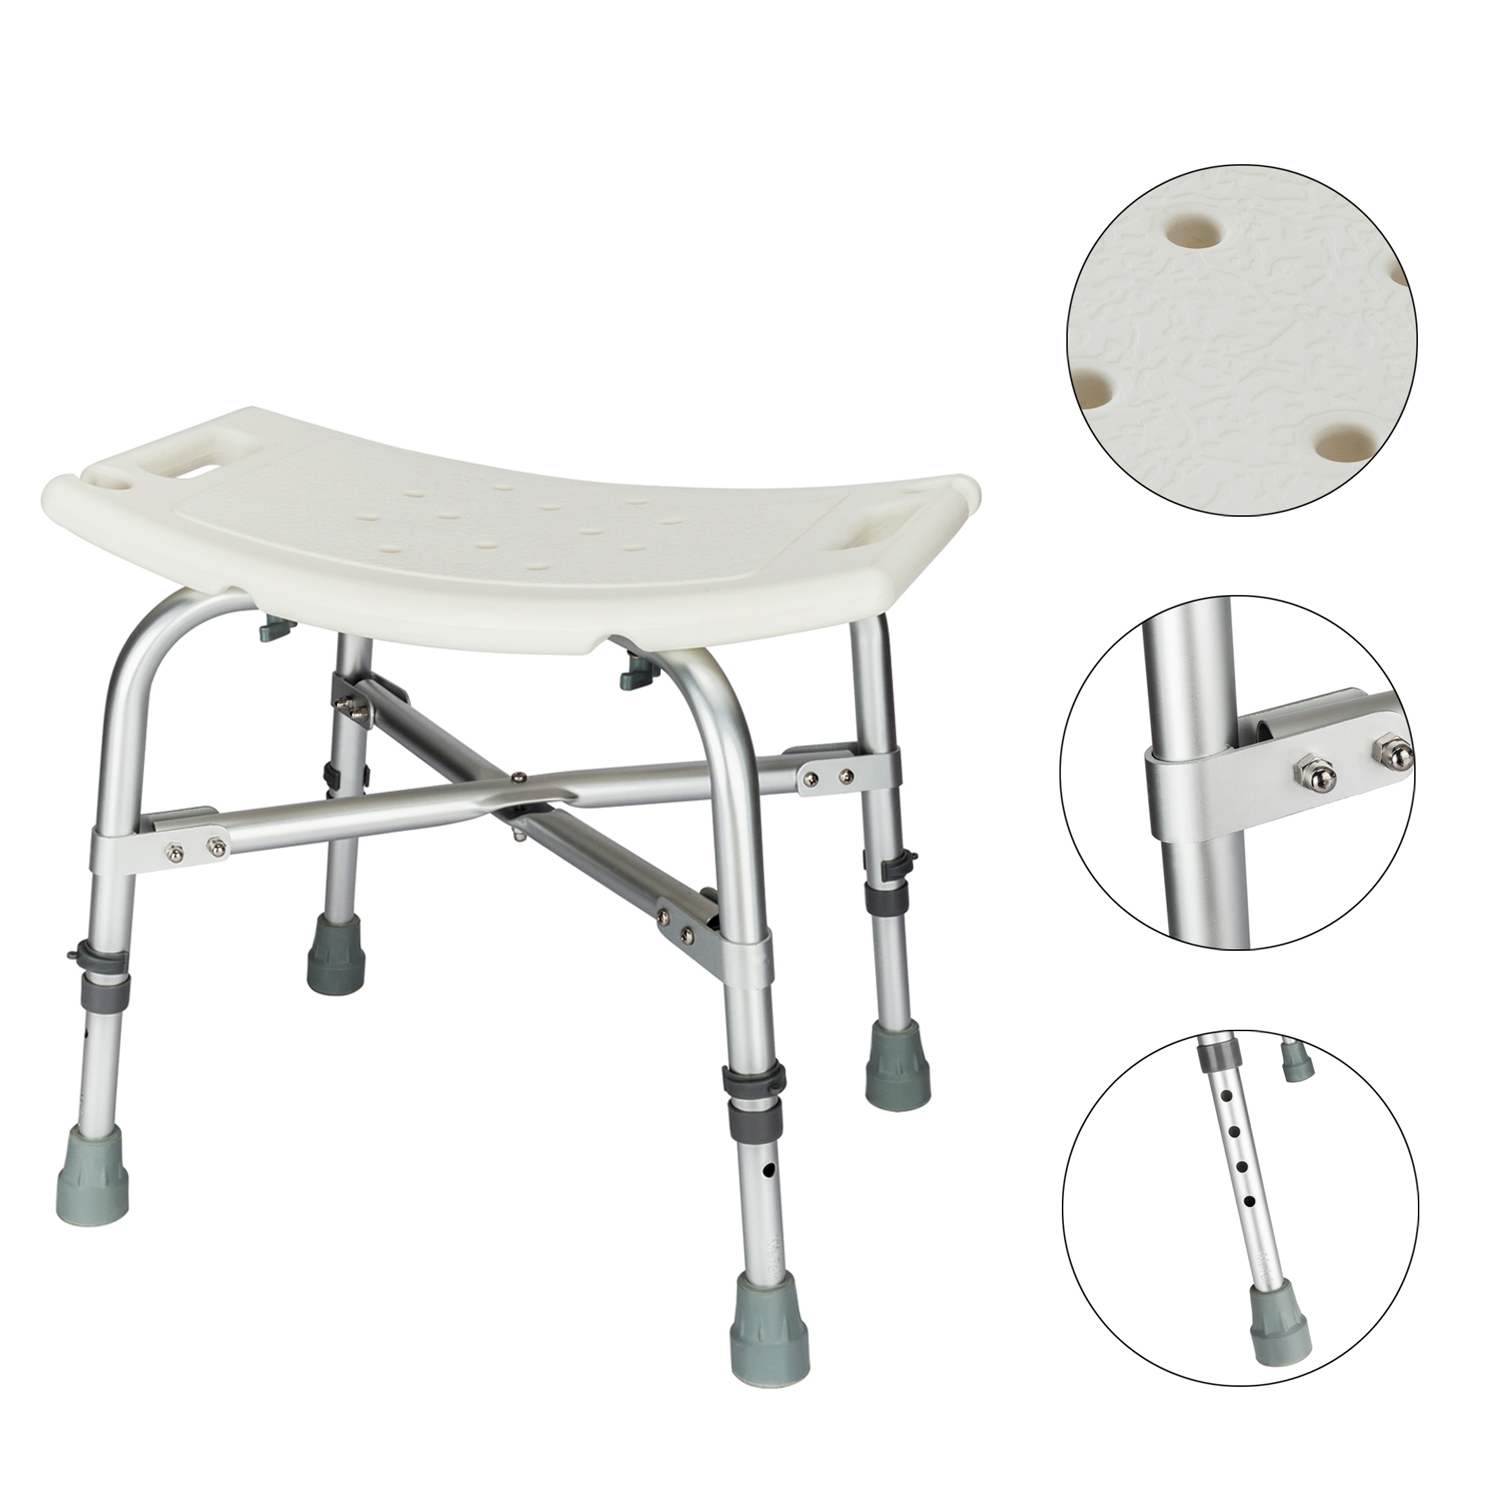 chair without back wooden lounge chairs adjustable medical heavy duty bathtub bath bench